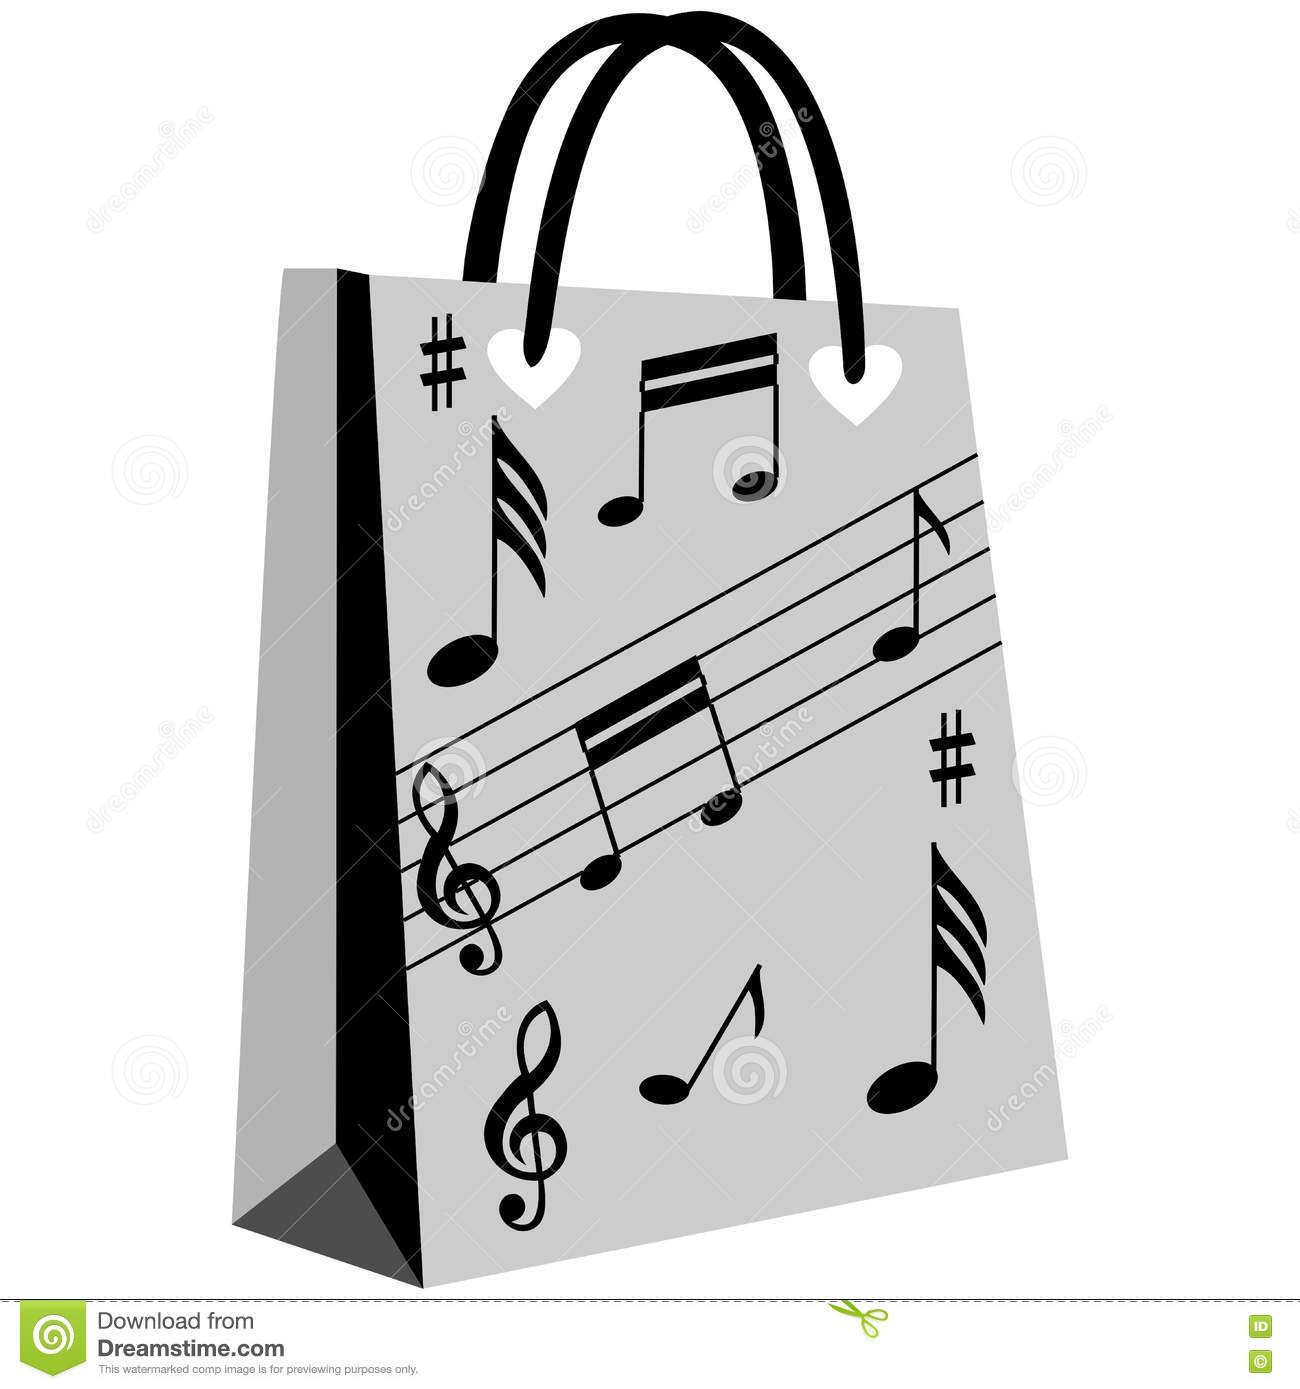 Music Notation Shopping Bag Stock Vector - Image: 73063832